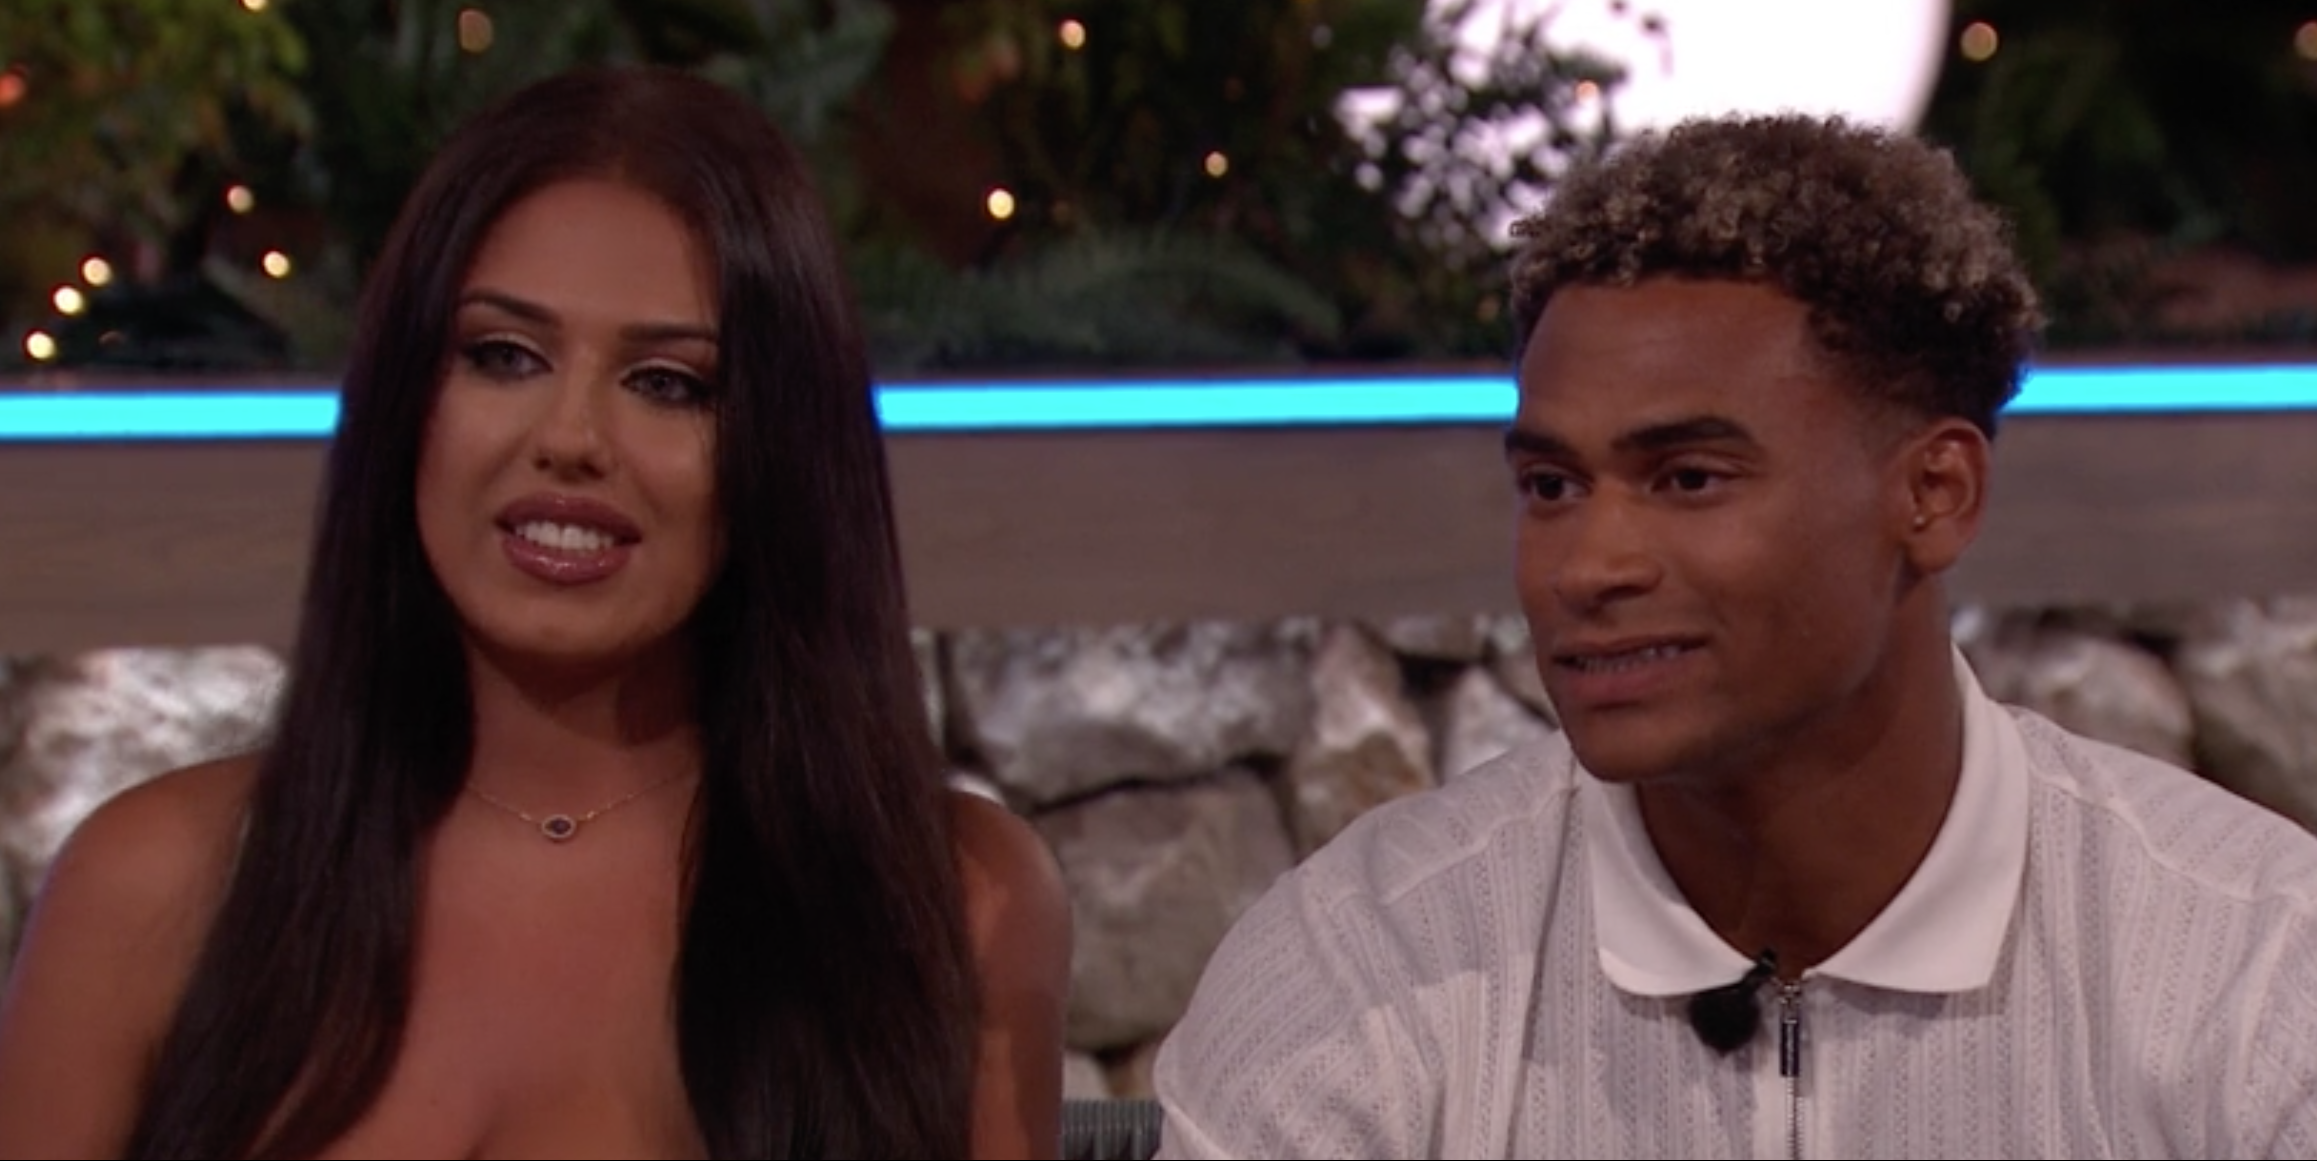 Love Island's Anna and Jordan embroiled in blazing row as they reunite on Aftersun